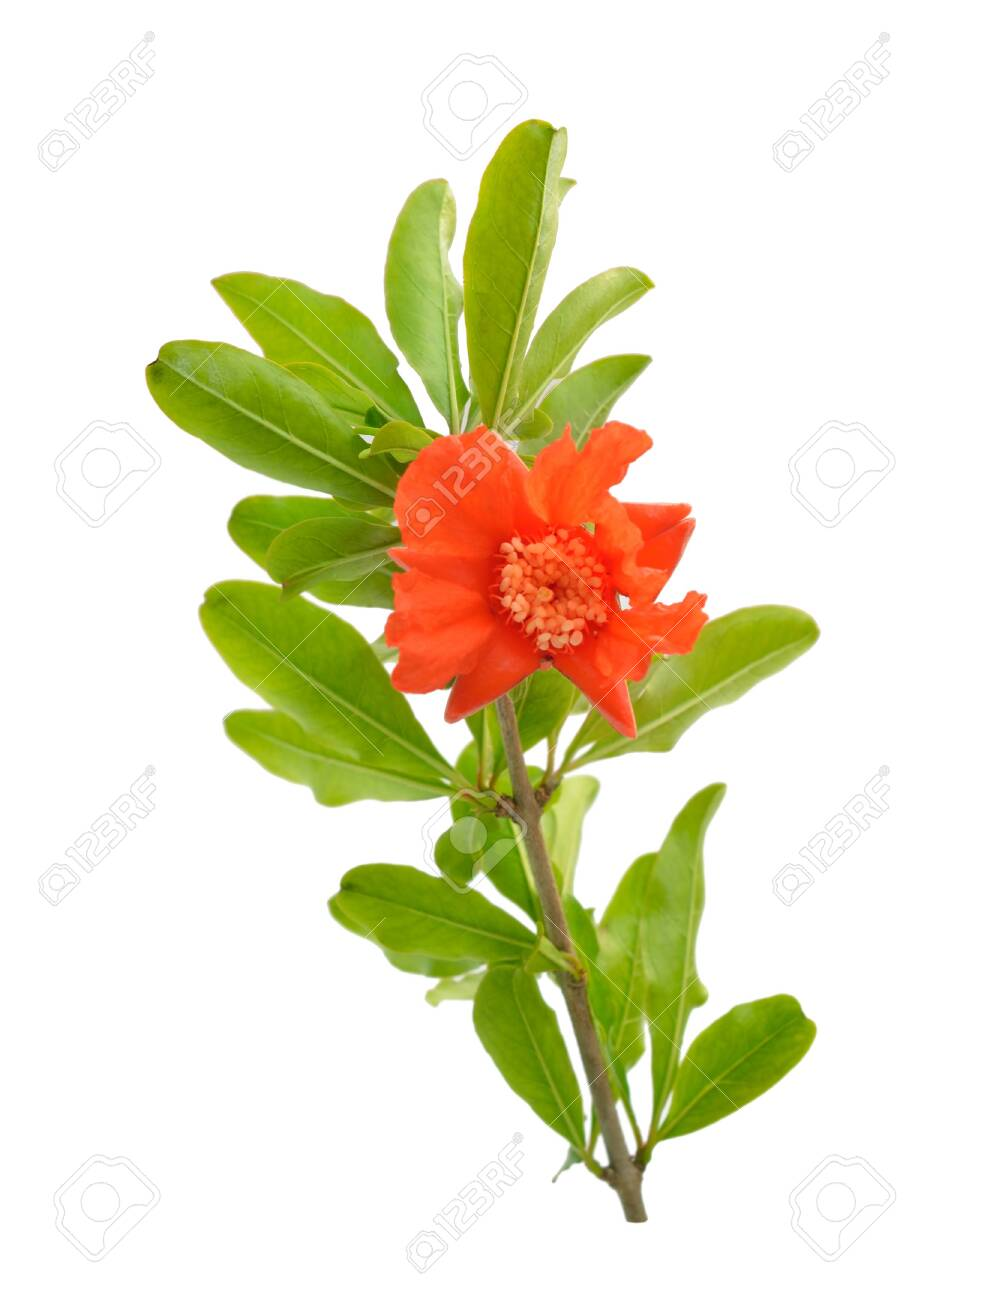 Flowers of Pumeca granatum or pomegranate isolated on white background. - 123208315